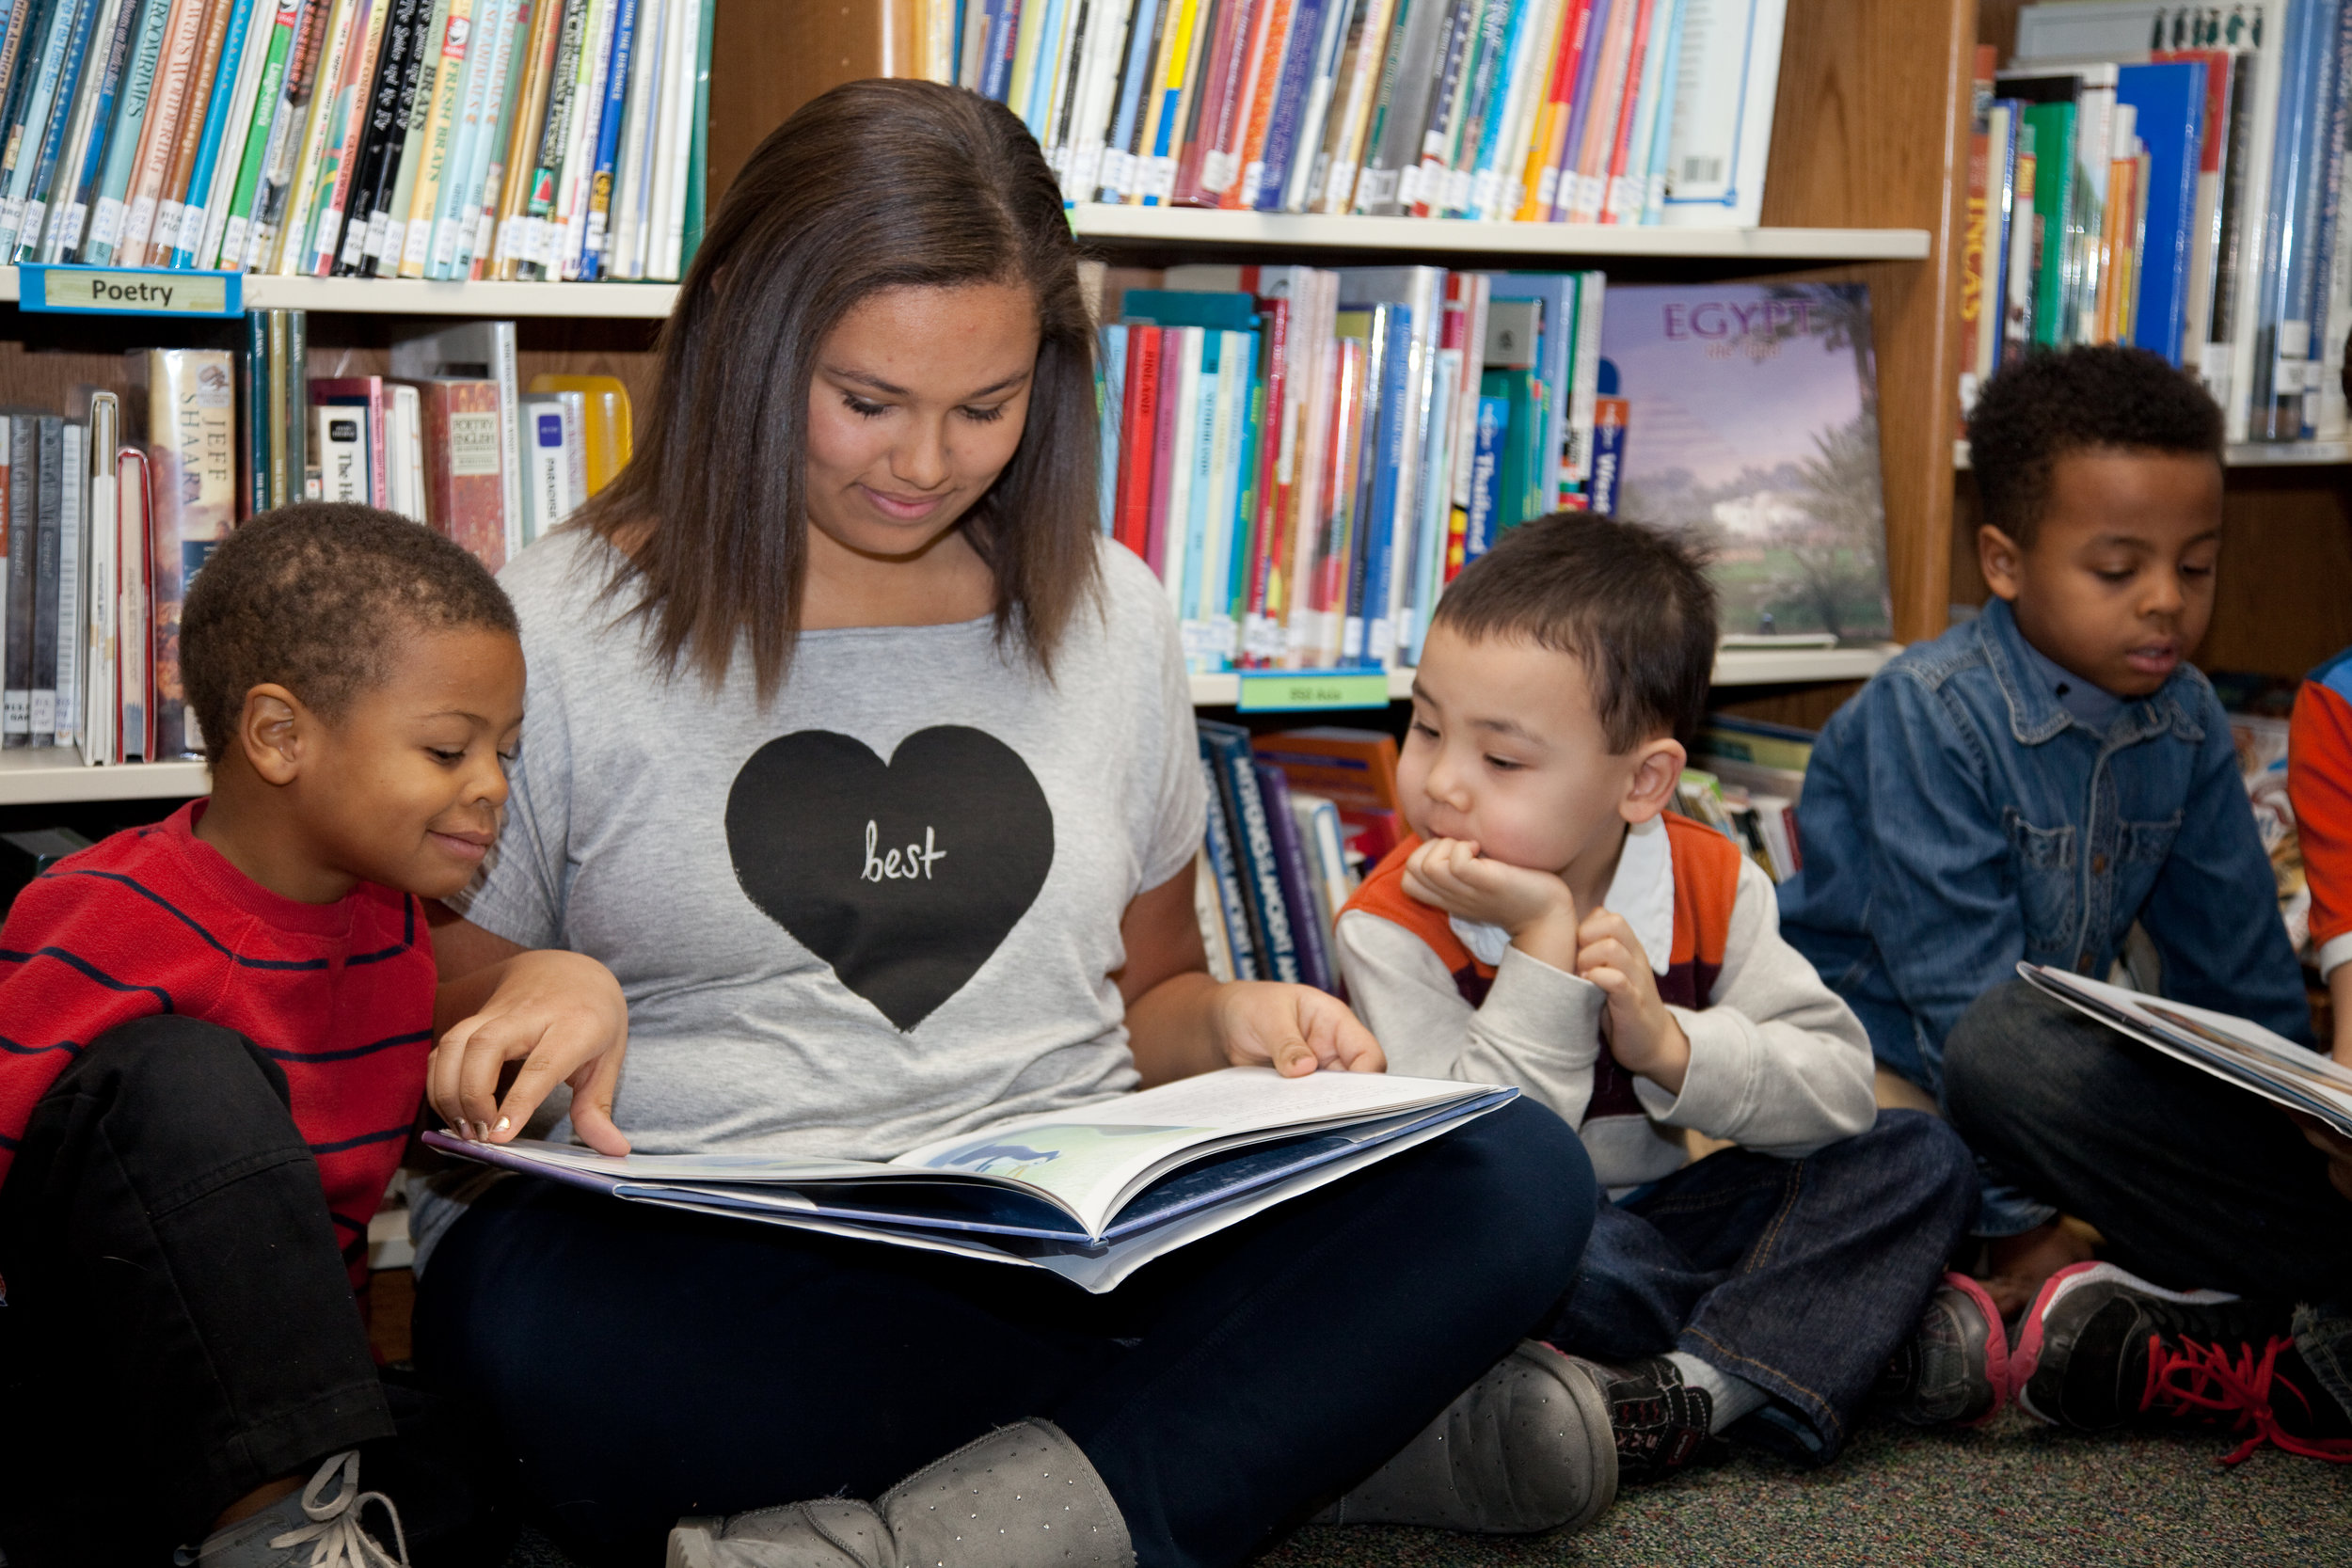 The Reading Buddies program builds confidence in Middle Schoolers, and gives our youngest students friends to look up to.